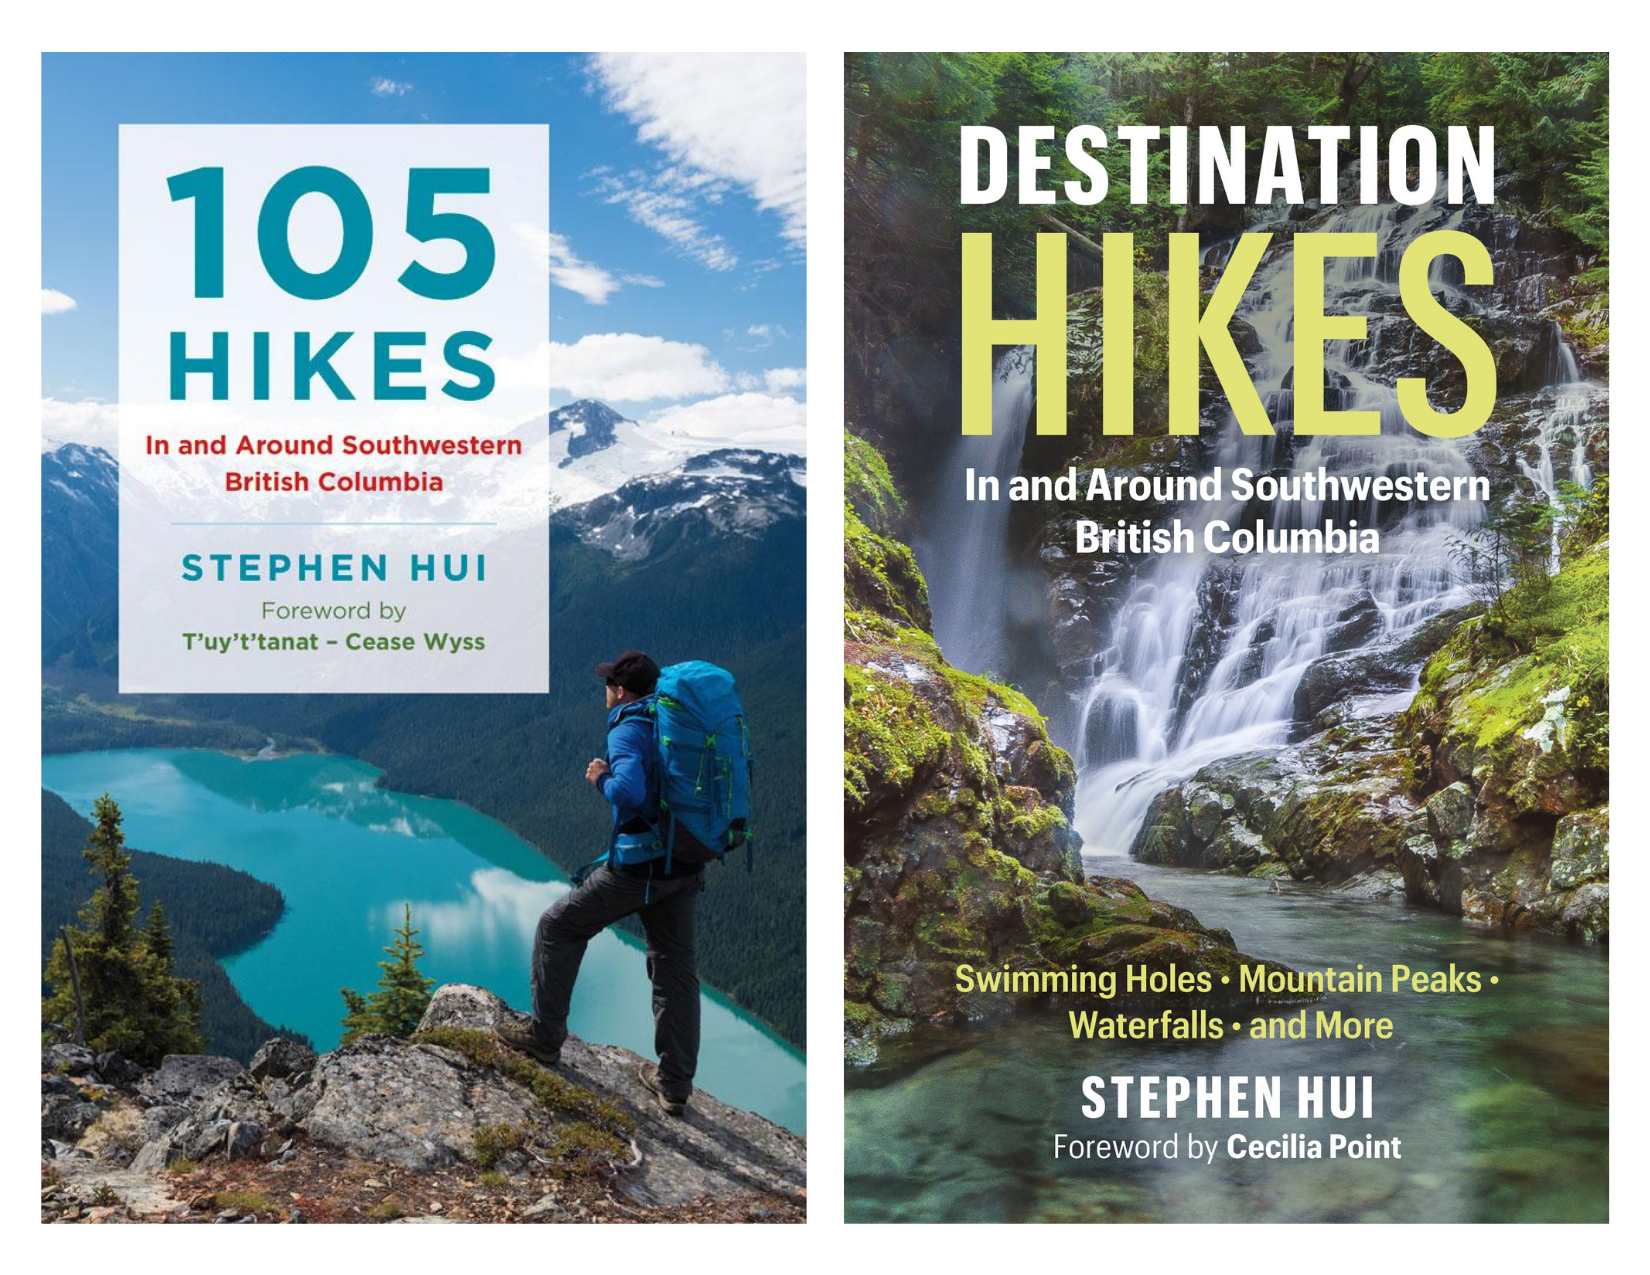 Hiking trail guides for Vancouver, B.C.